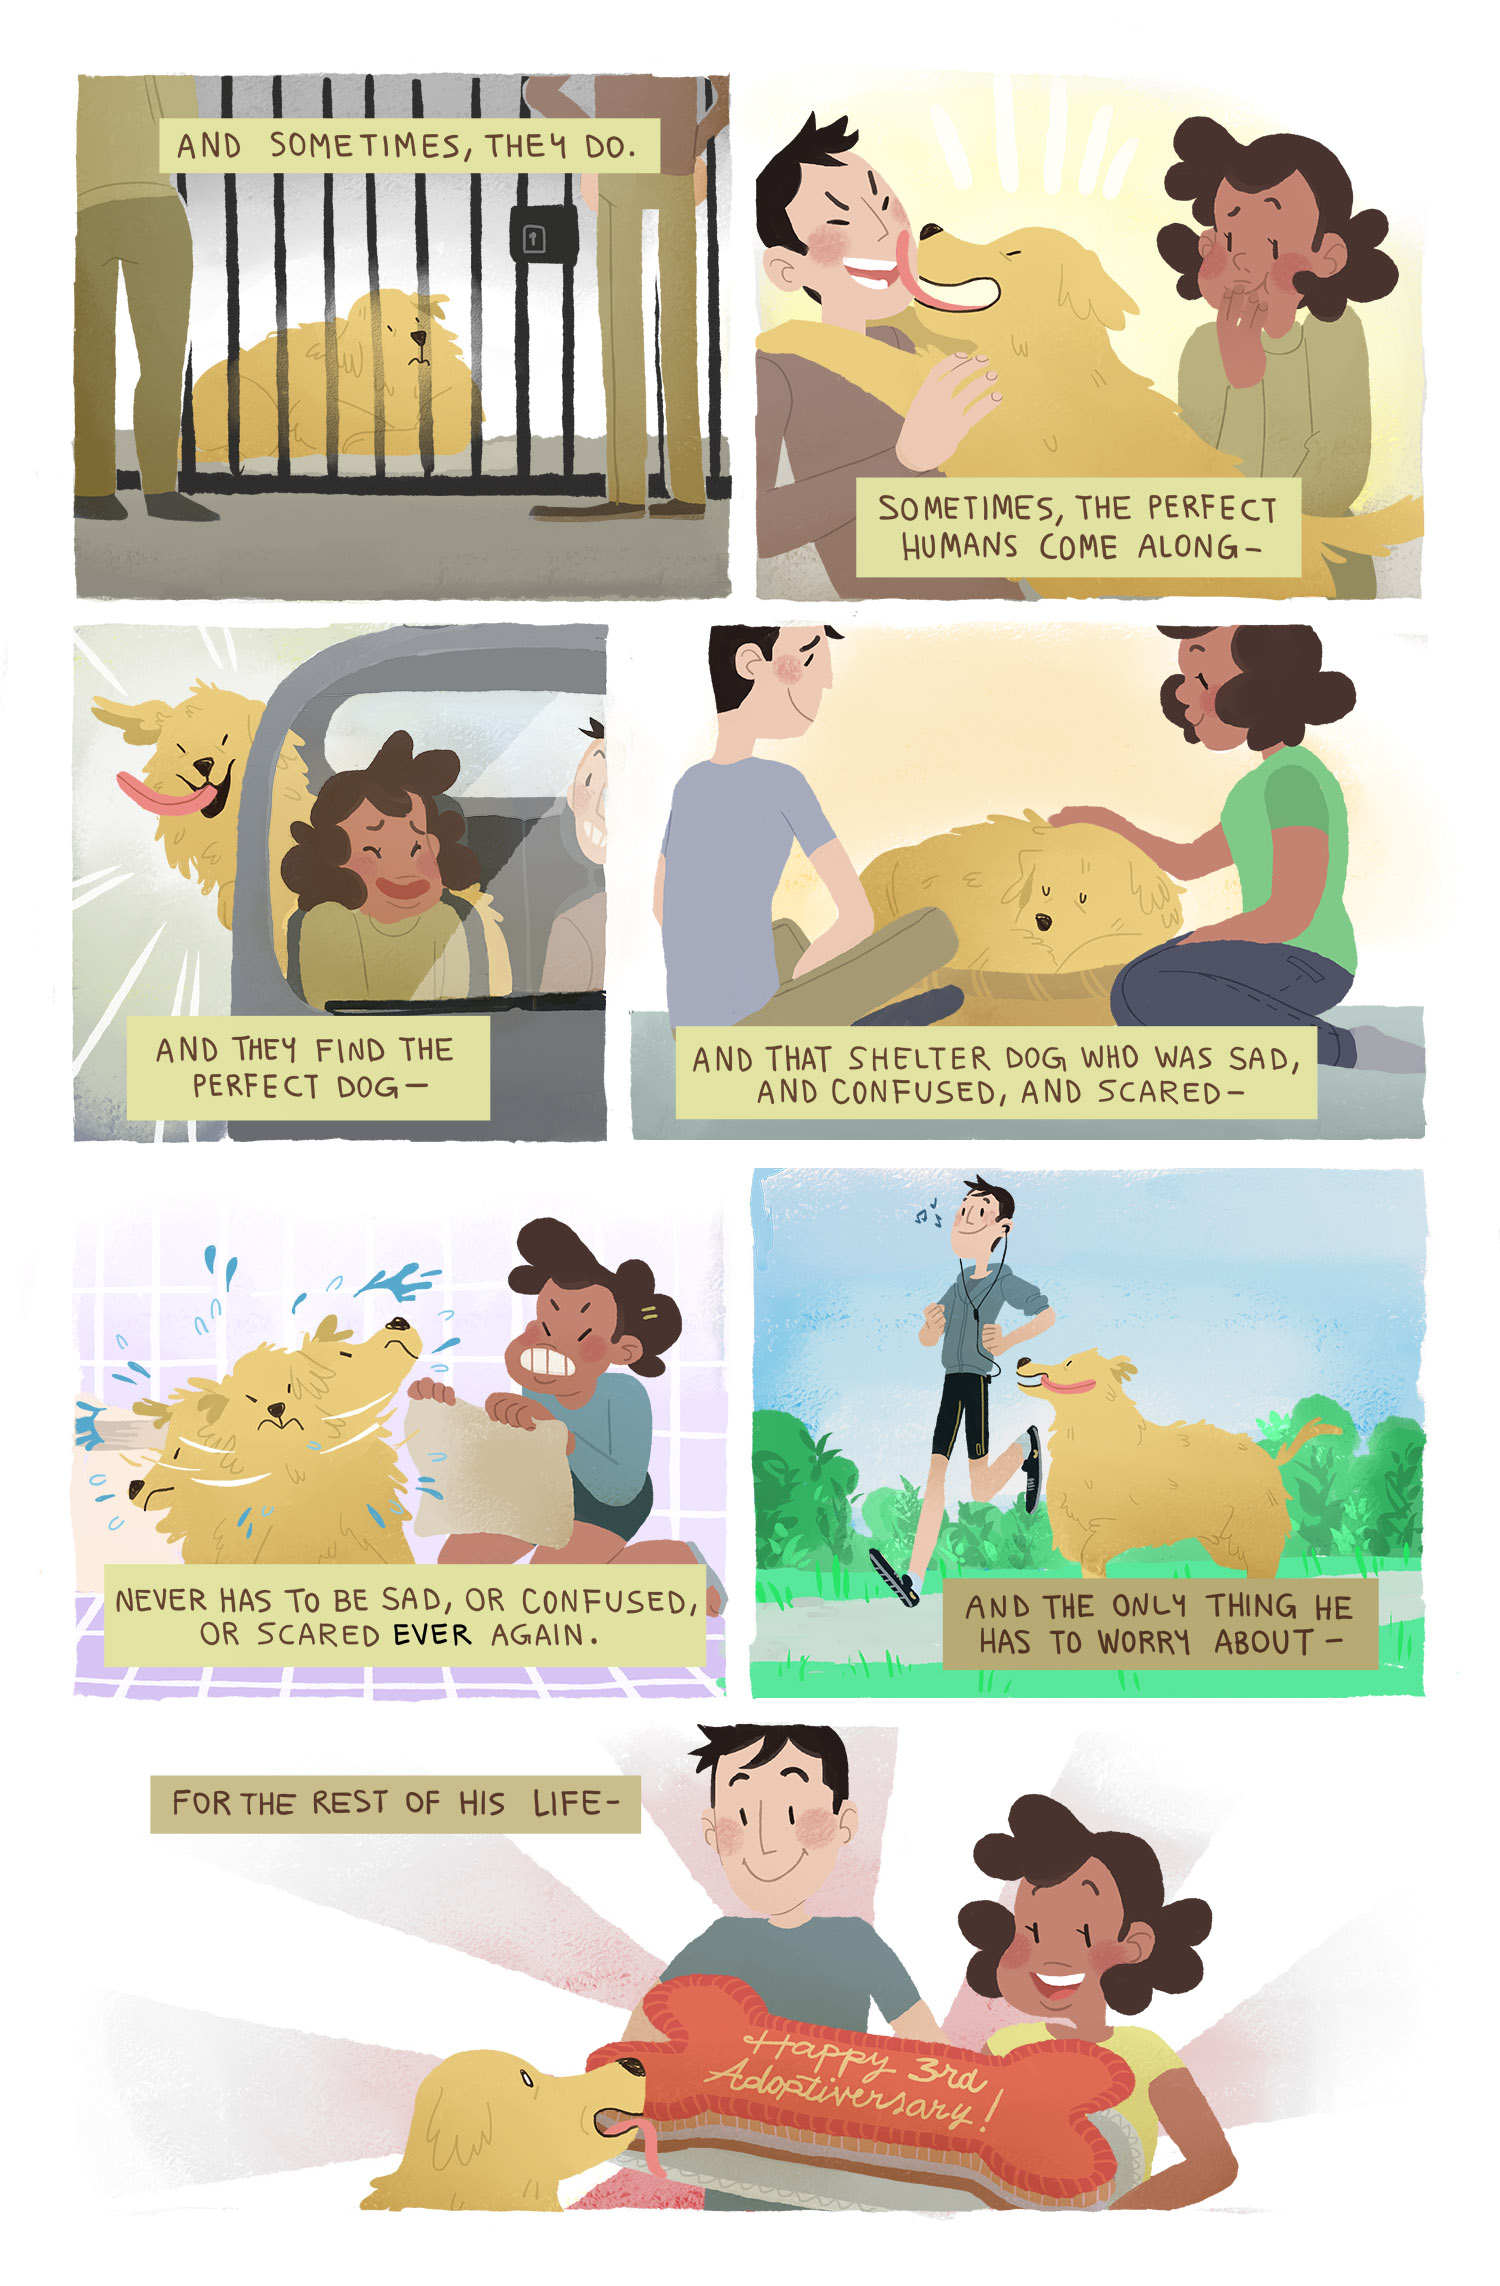 life-of-a-shelter-dog-page-3